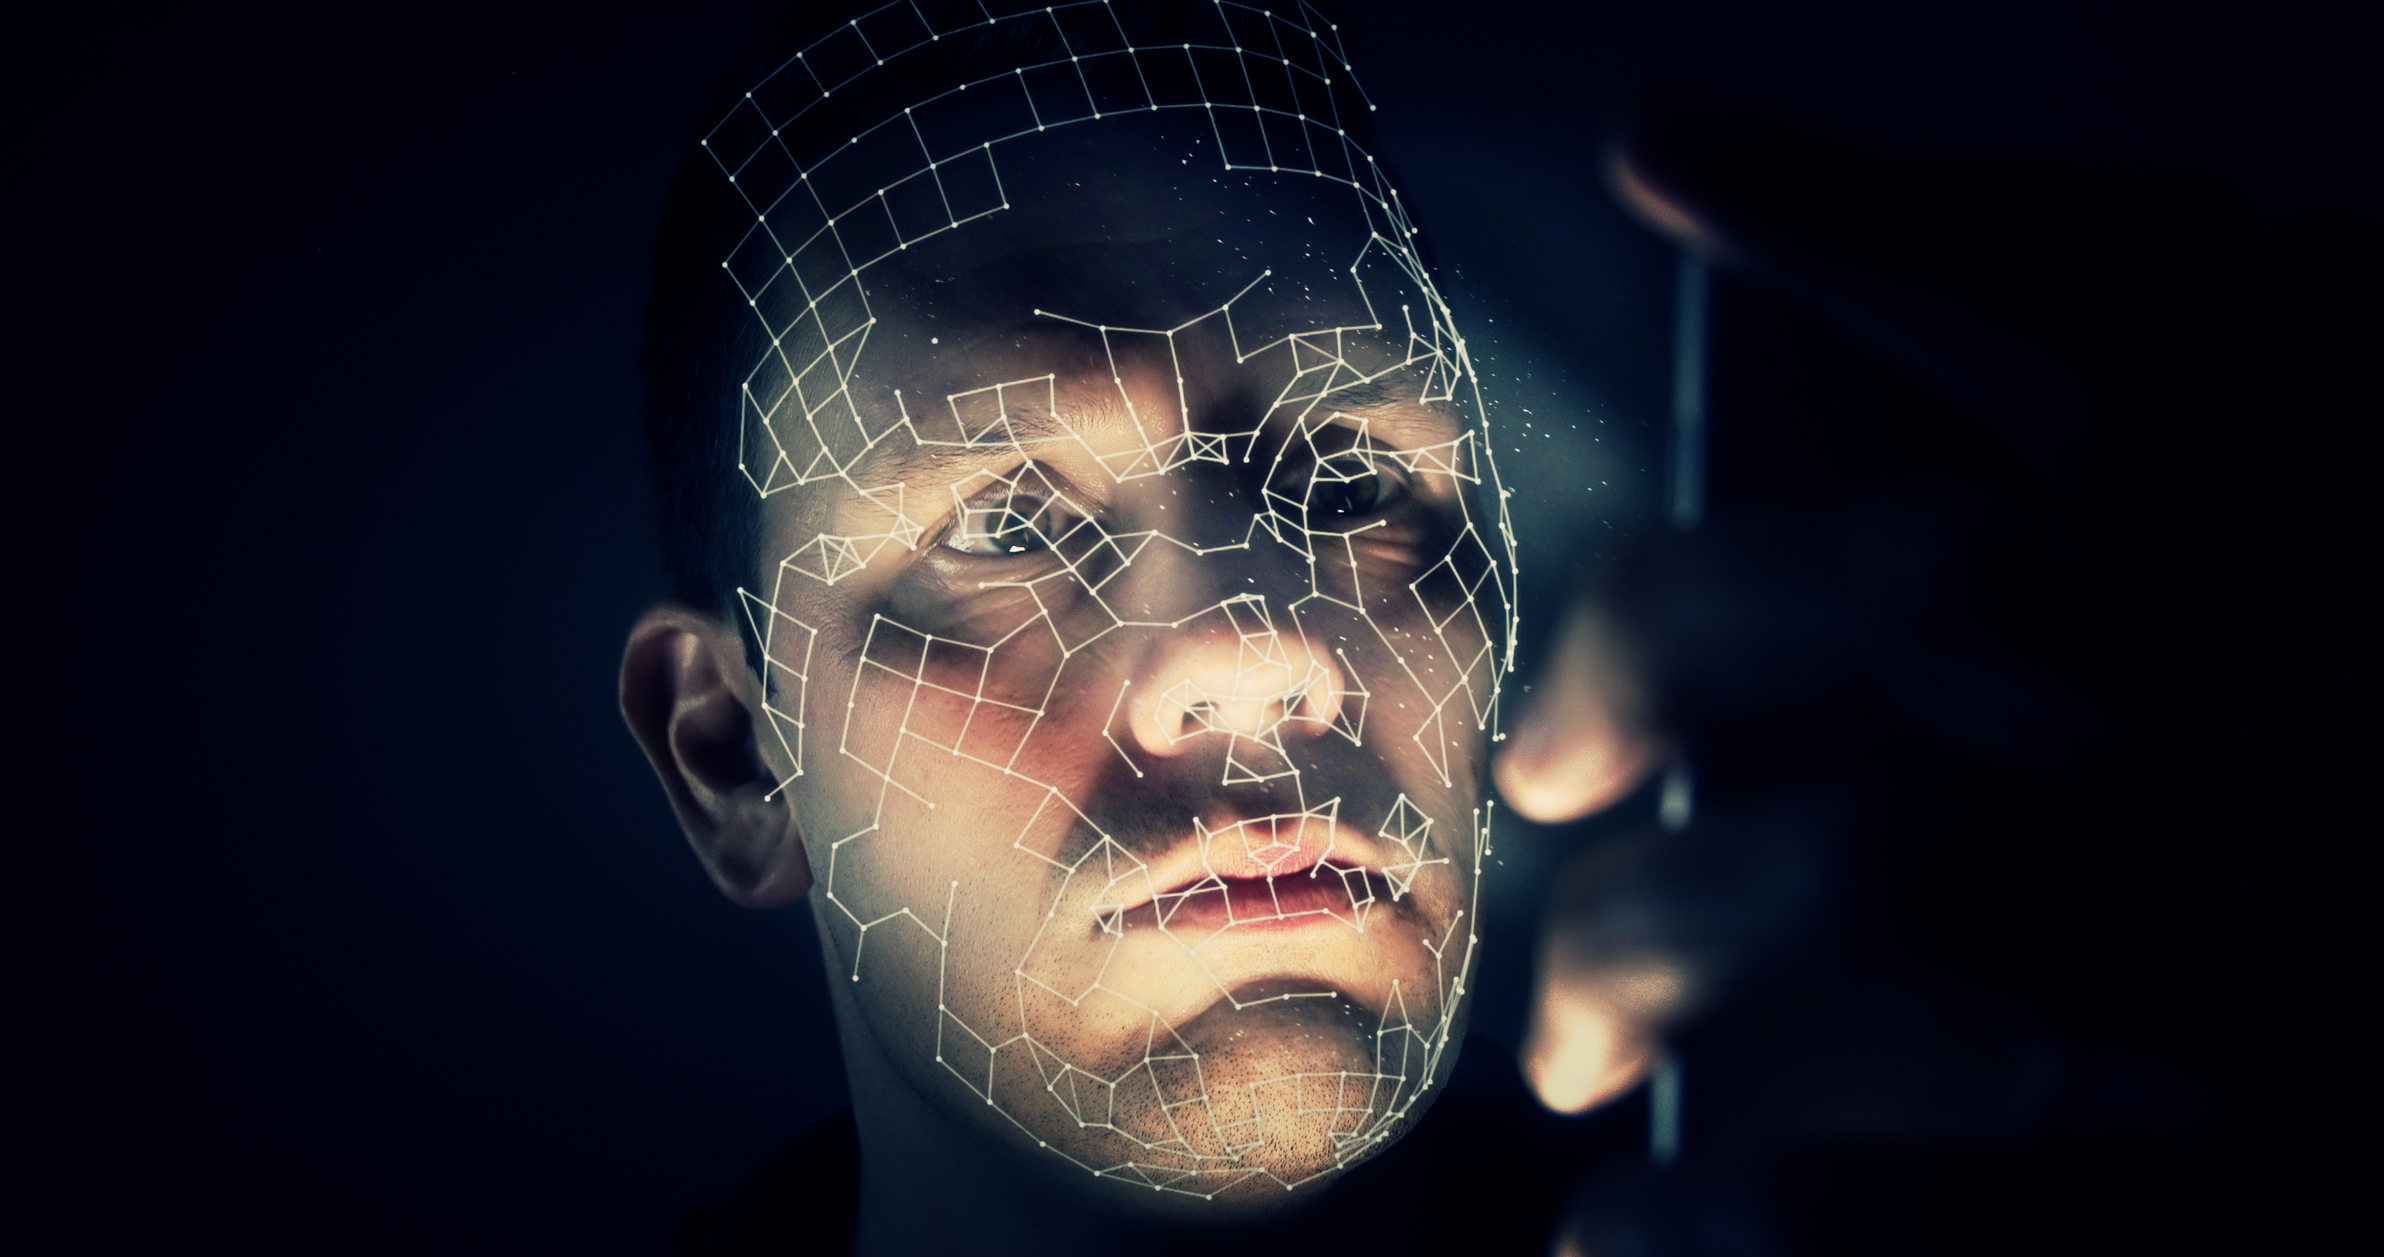 Article image for New facial recognition technology potentially dangerous in wrong hands